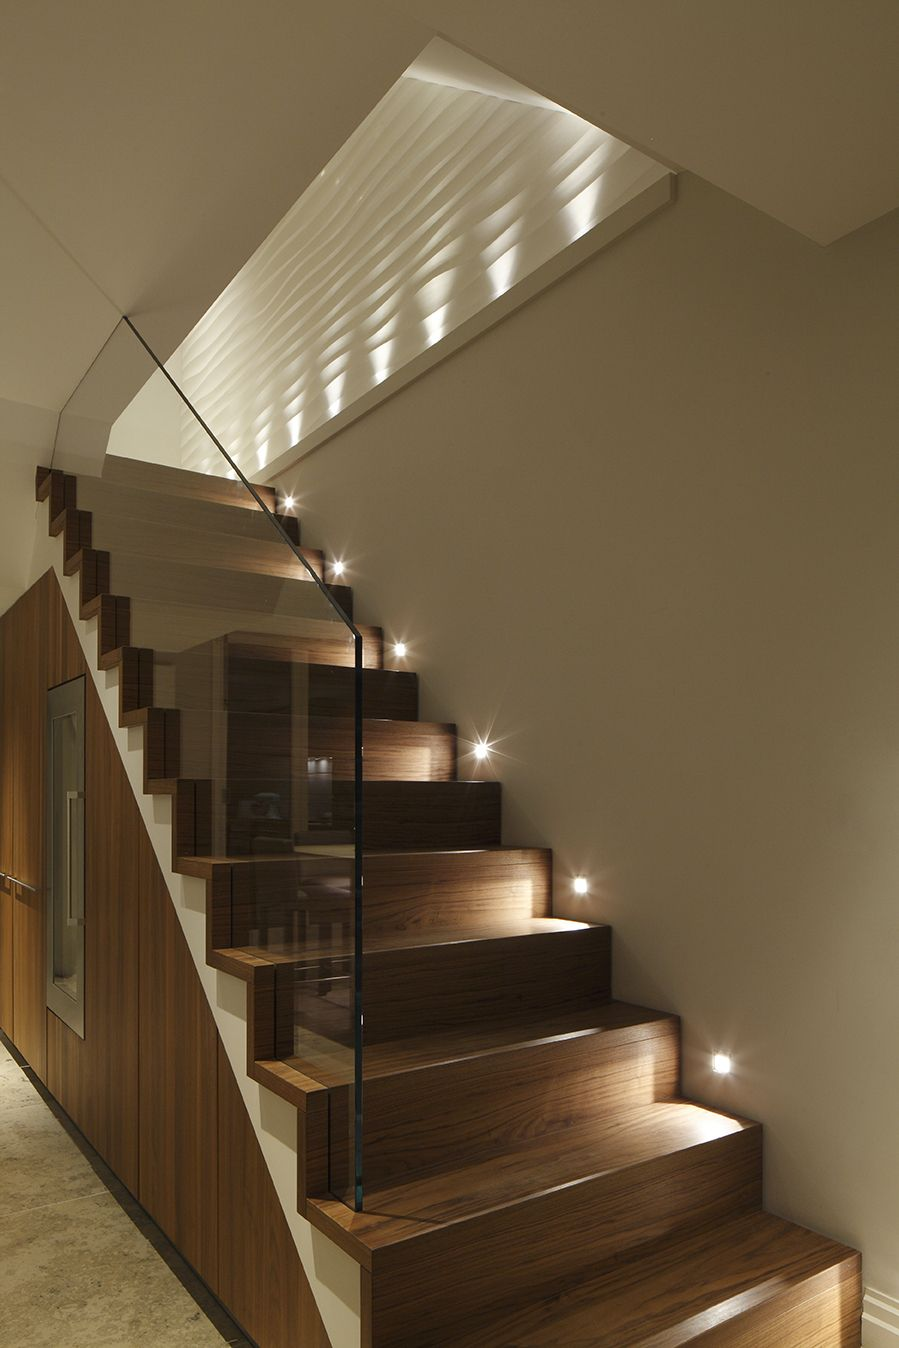 Basement Stair Ceiling Lighting: Lansdowne Road 61 LR (87)